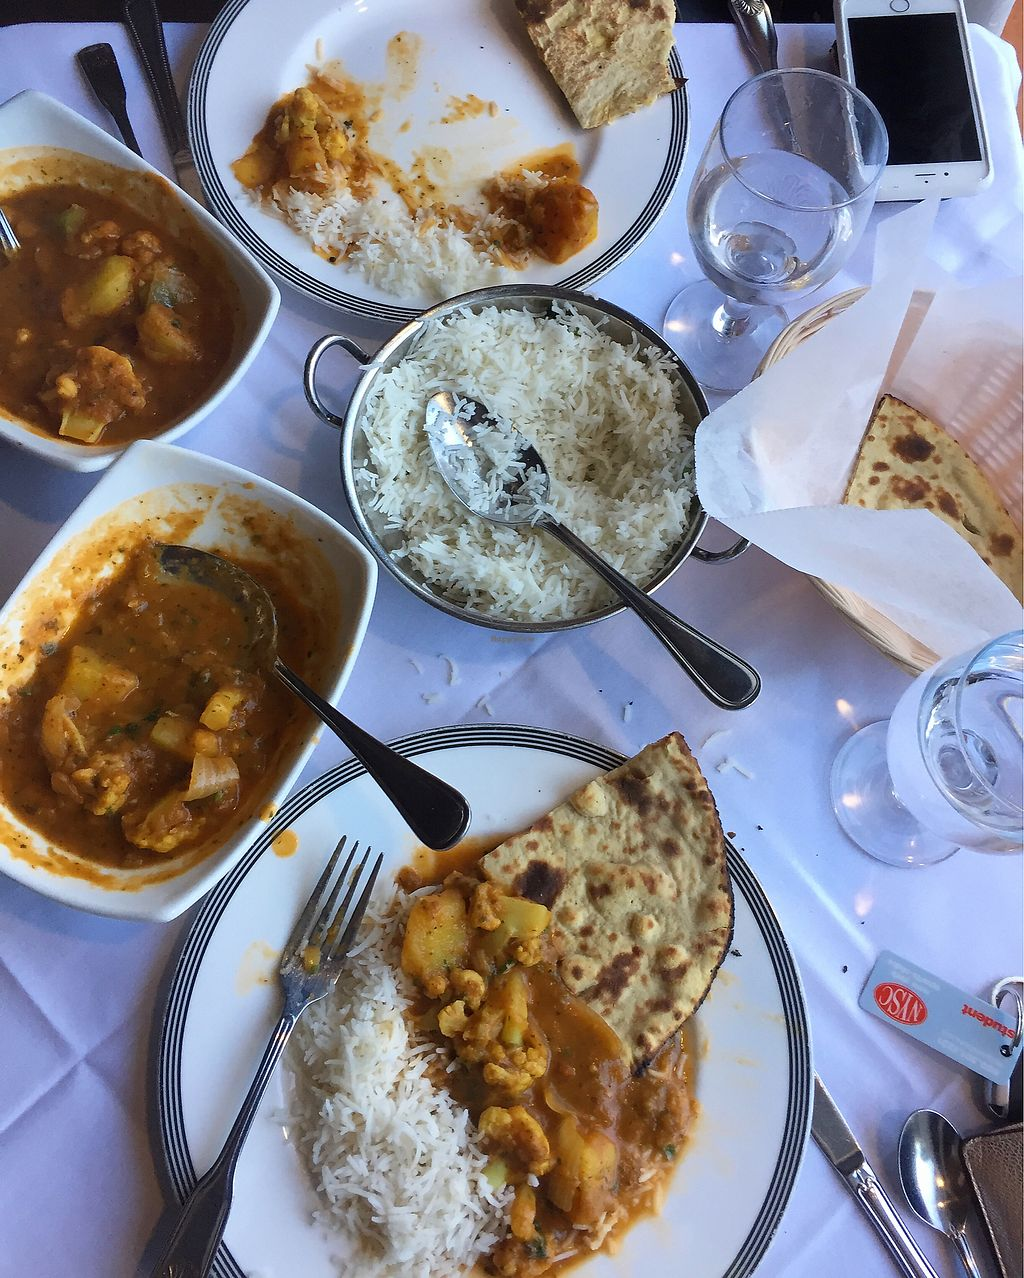 """Photo of Nirvana Indian Kitchen  by <a href=""""/members/profile/Lizziebenson"""">Lizziebenson</a> <br/>Potato and cauliflower curry of the vegan menu  <br/> August 28, 2017  - <a href='/contact/abuse/image/85239/298266'>Report</a>"""